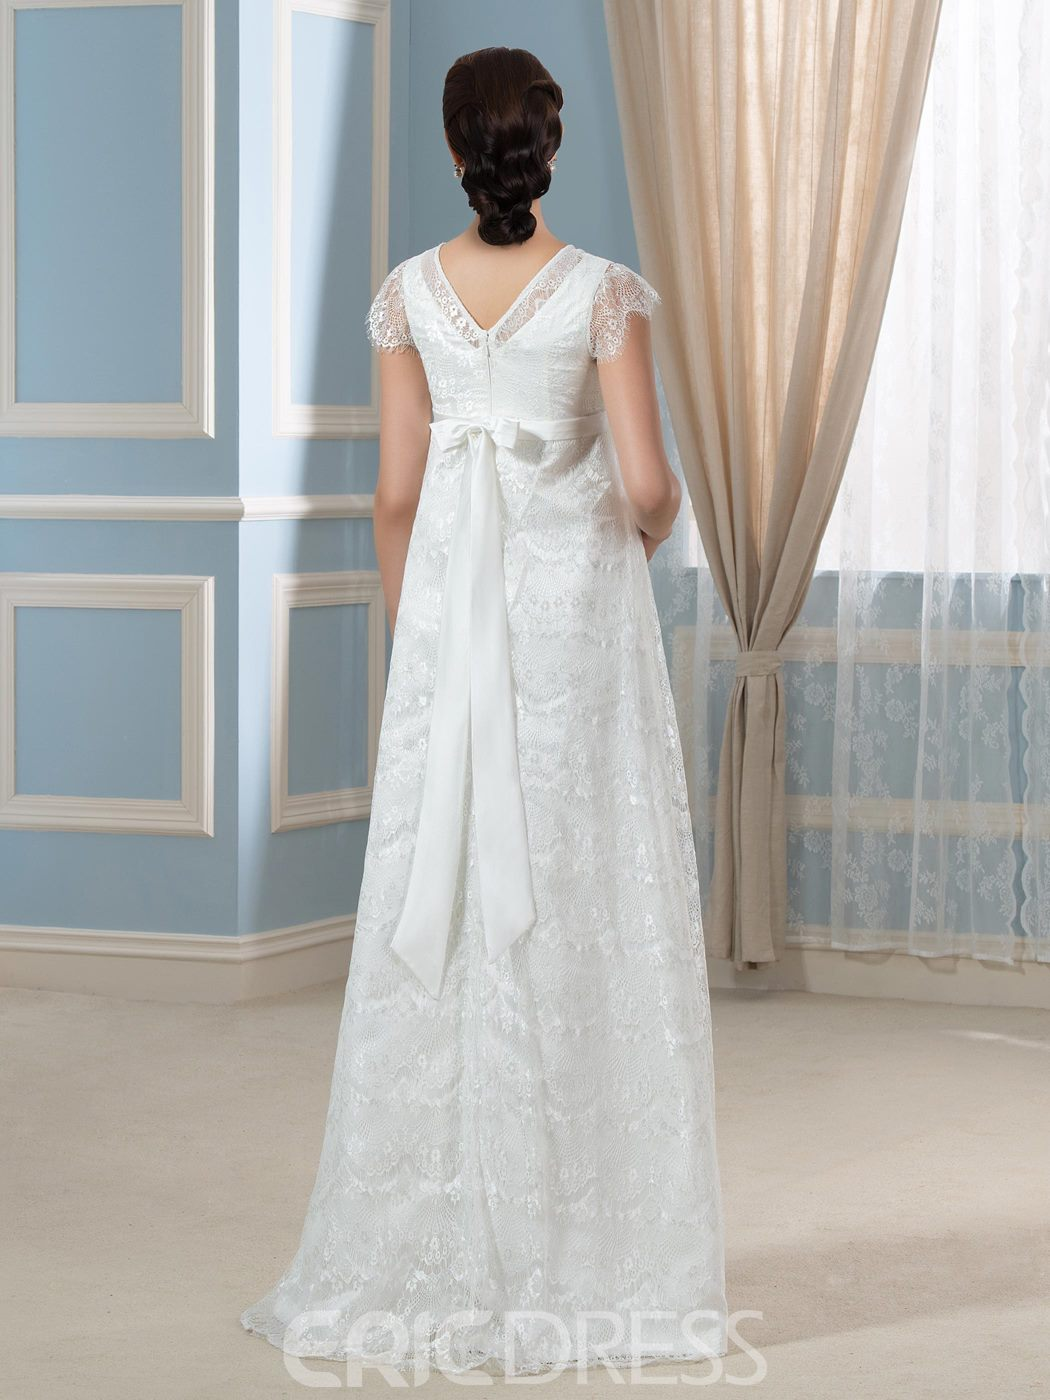 Ericdress Elegant V necl A line Lace Maternity Wedding Dress